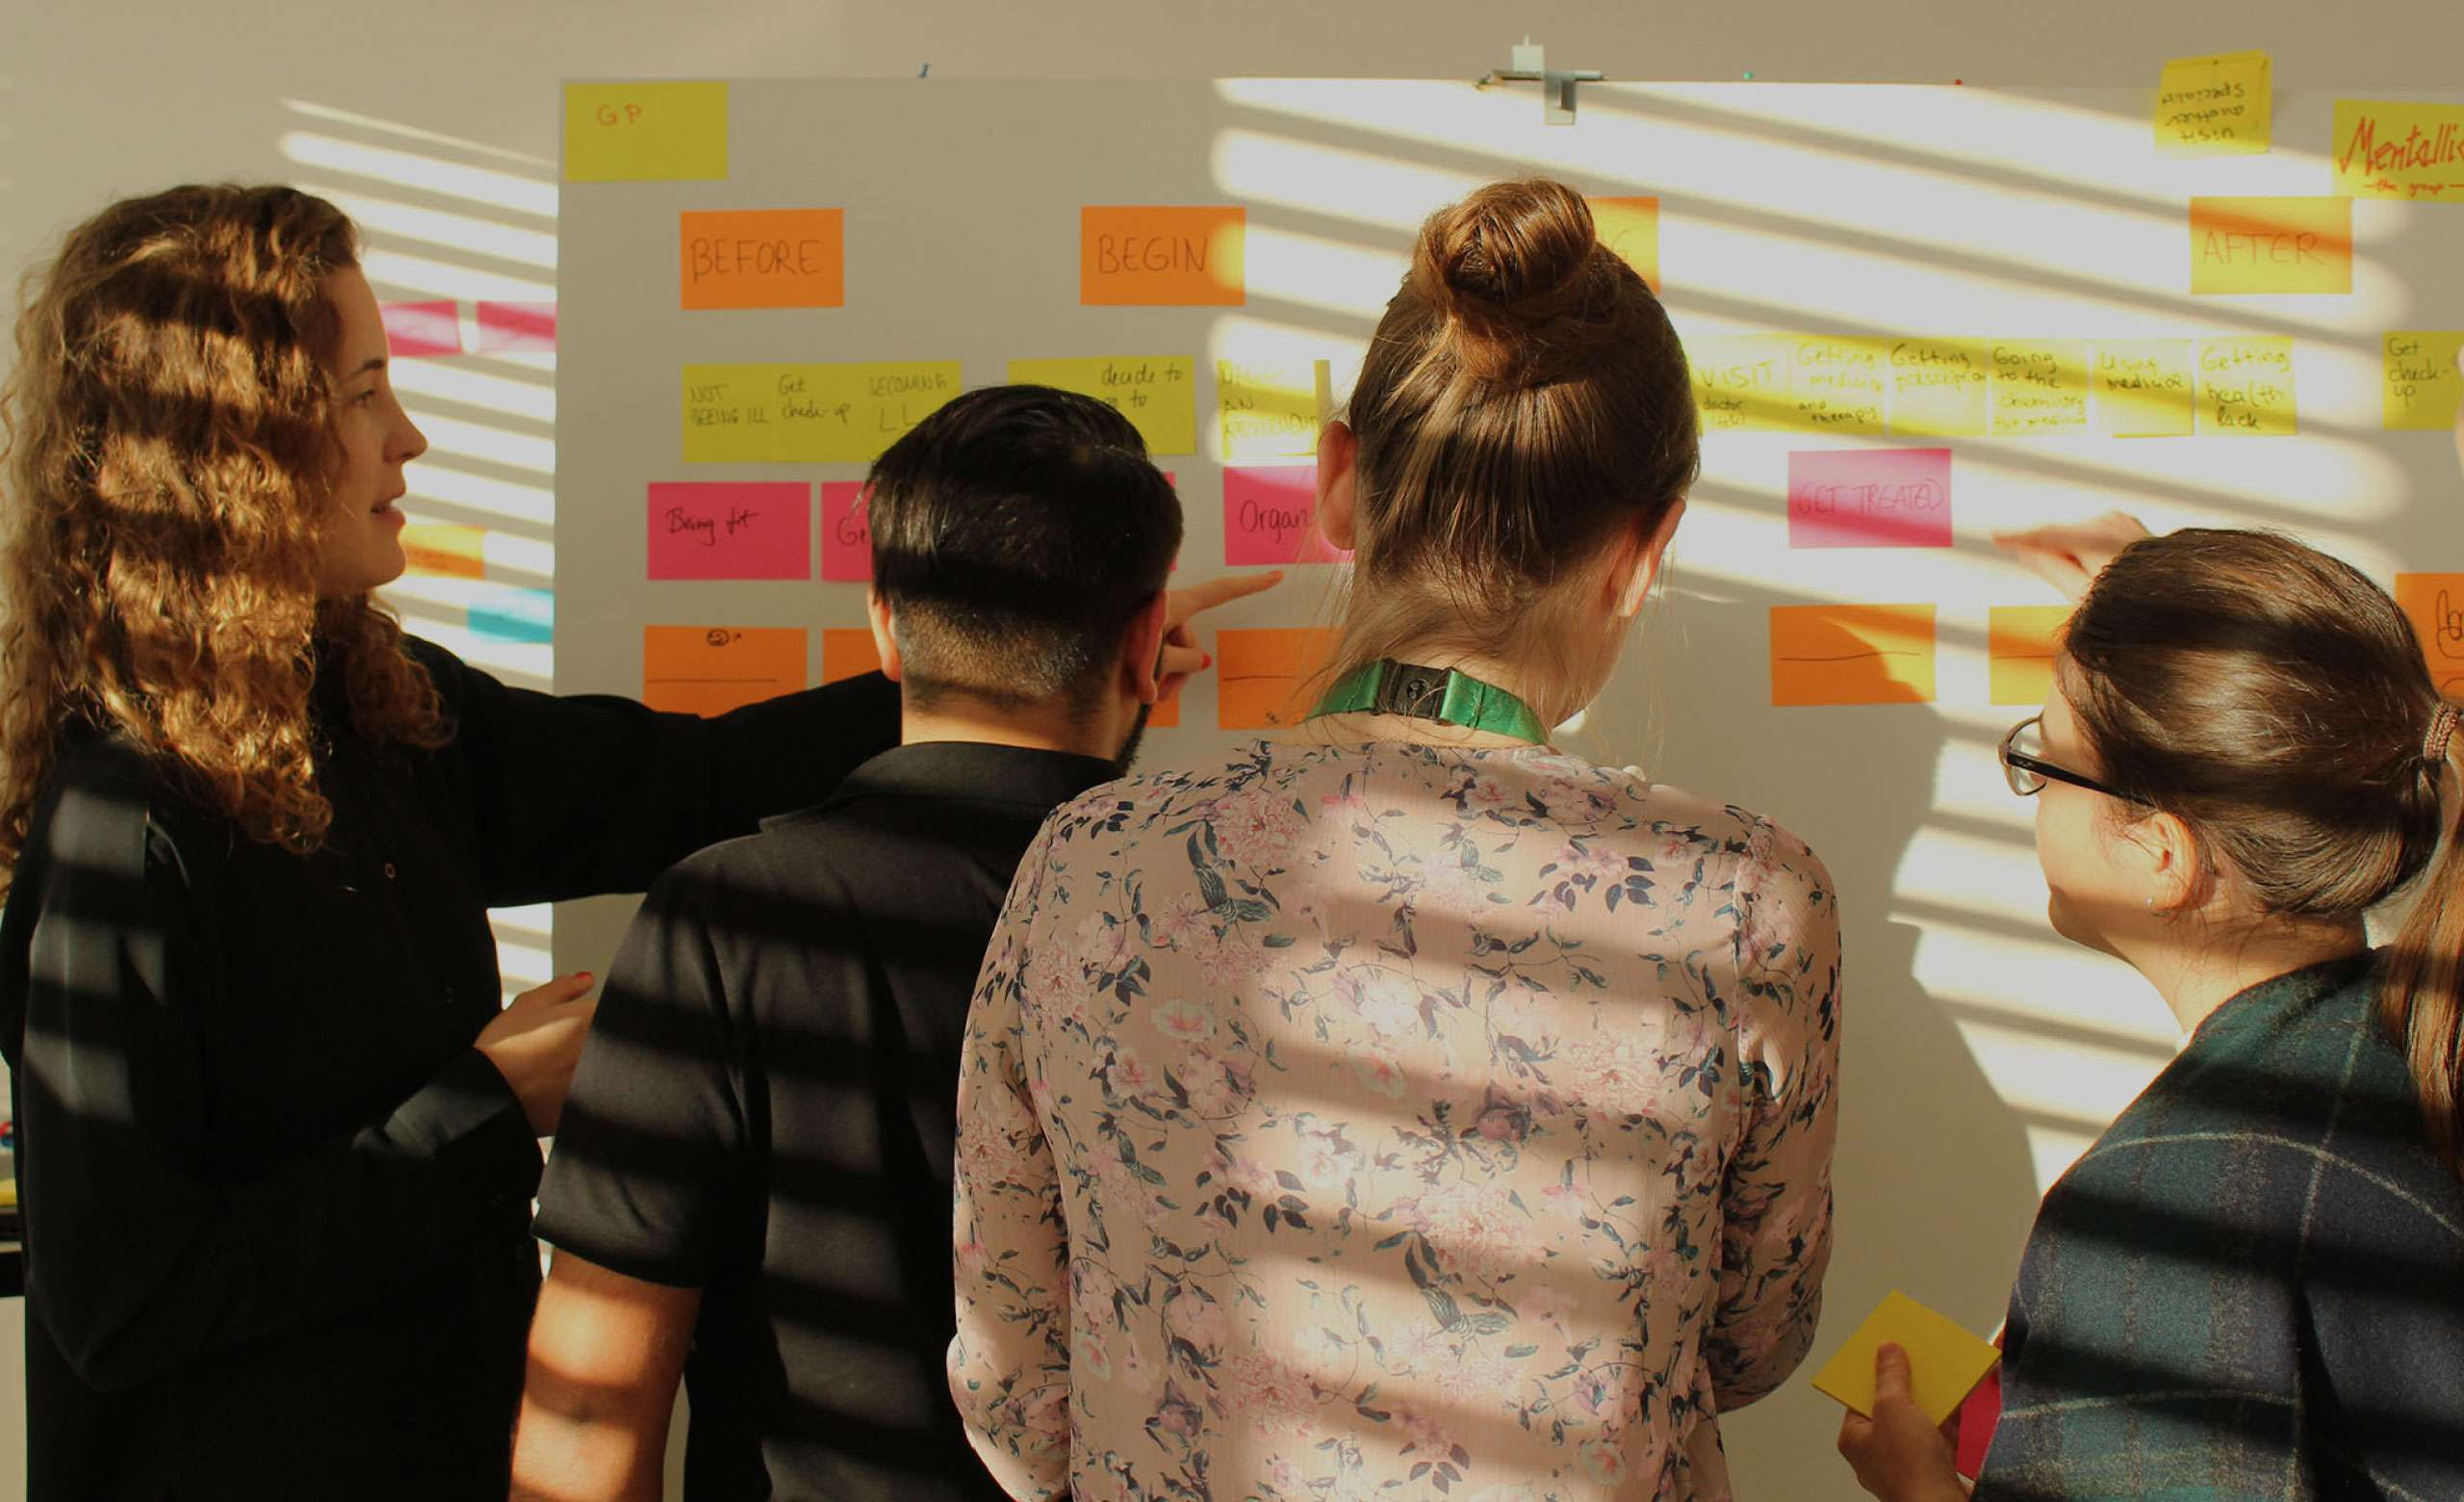 Get service design training at the source.